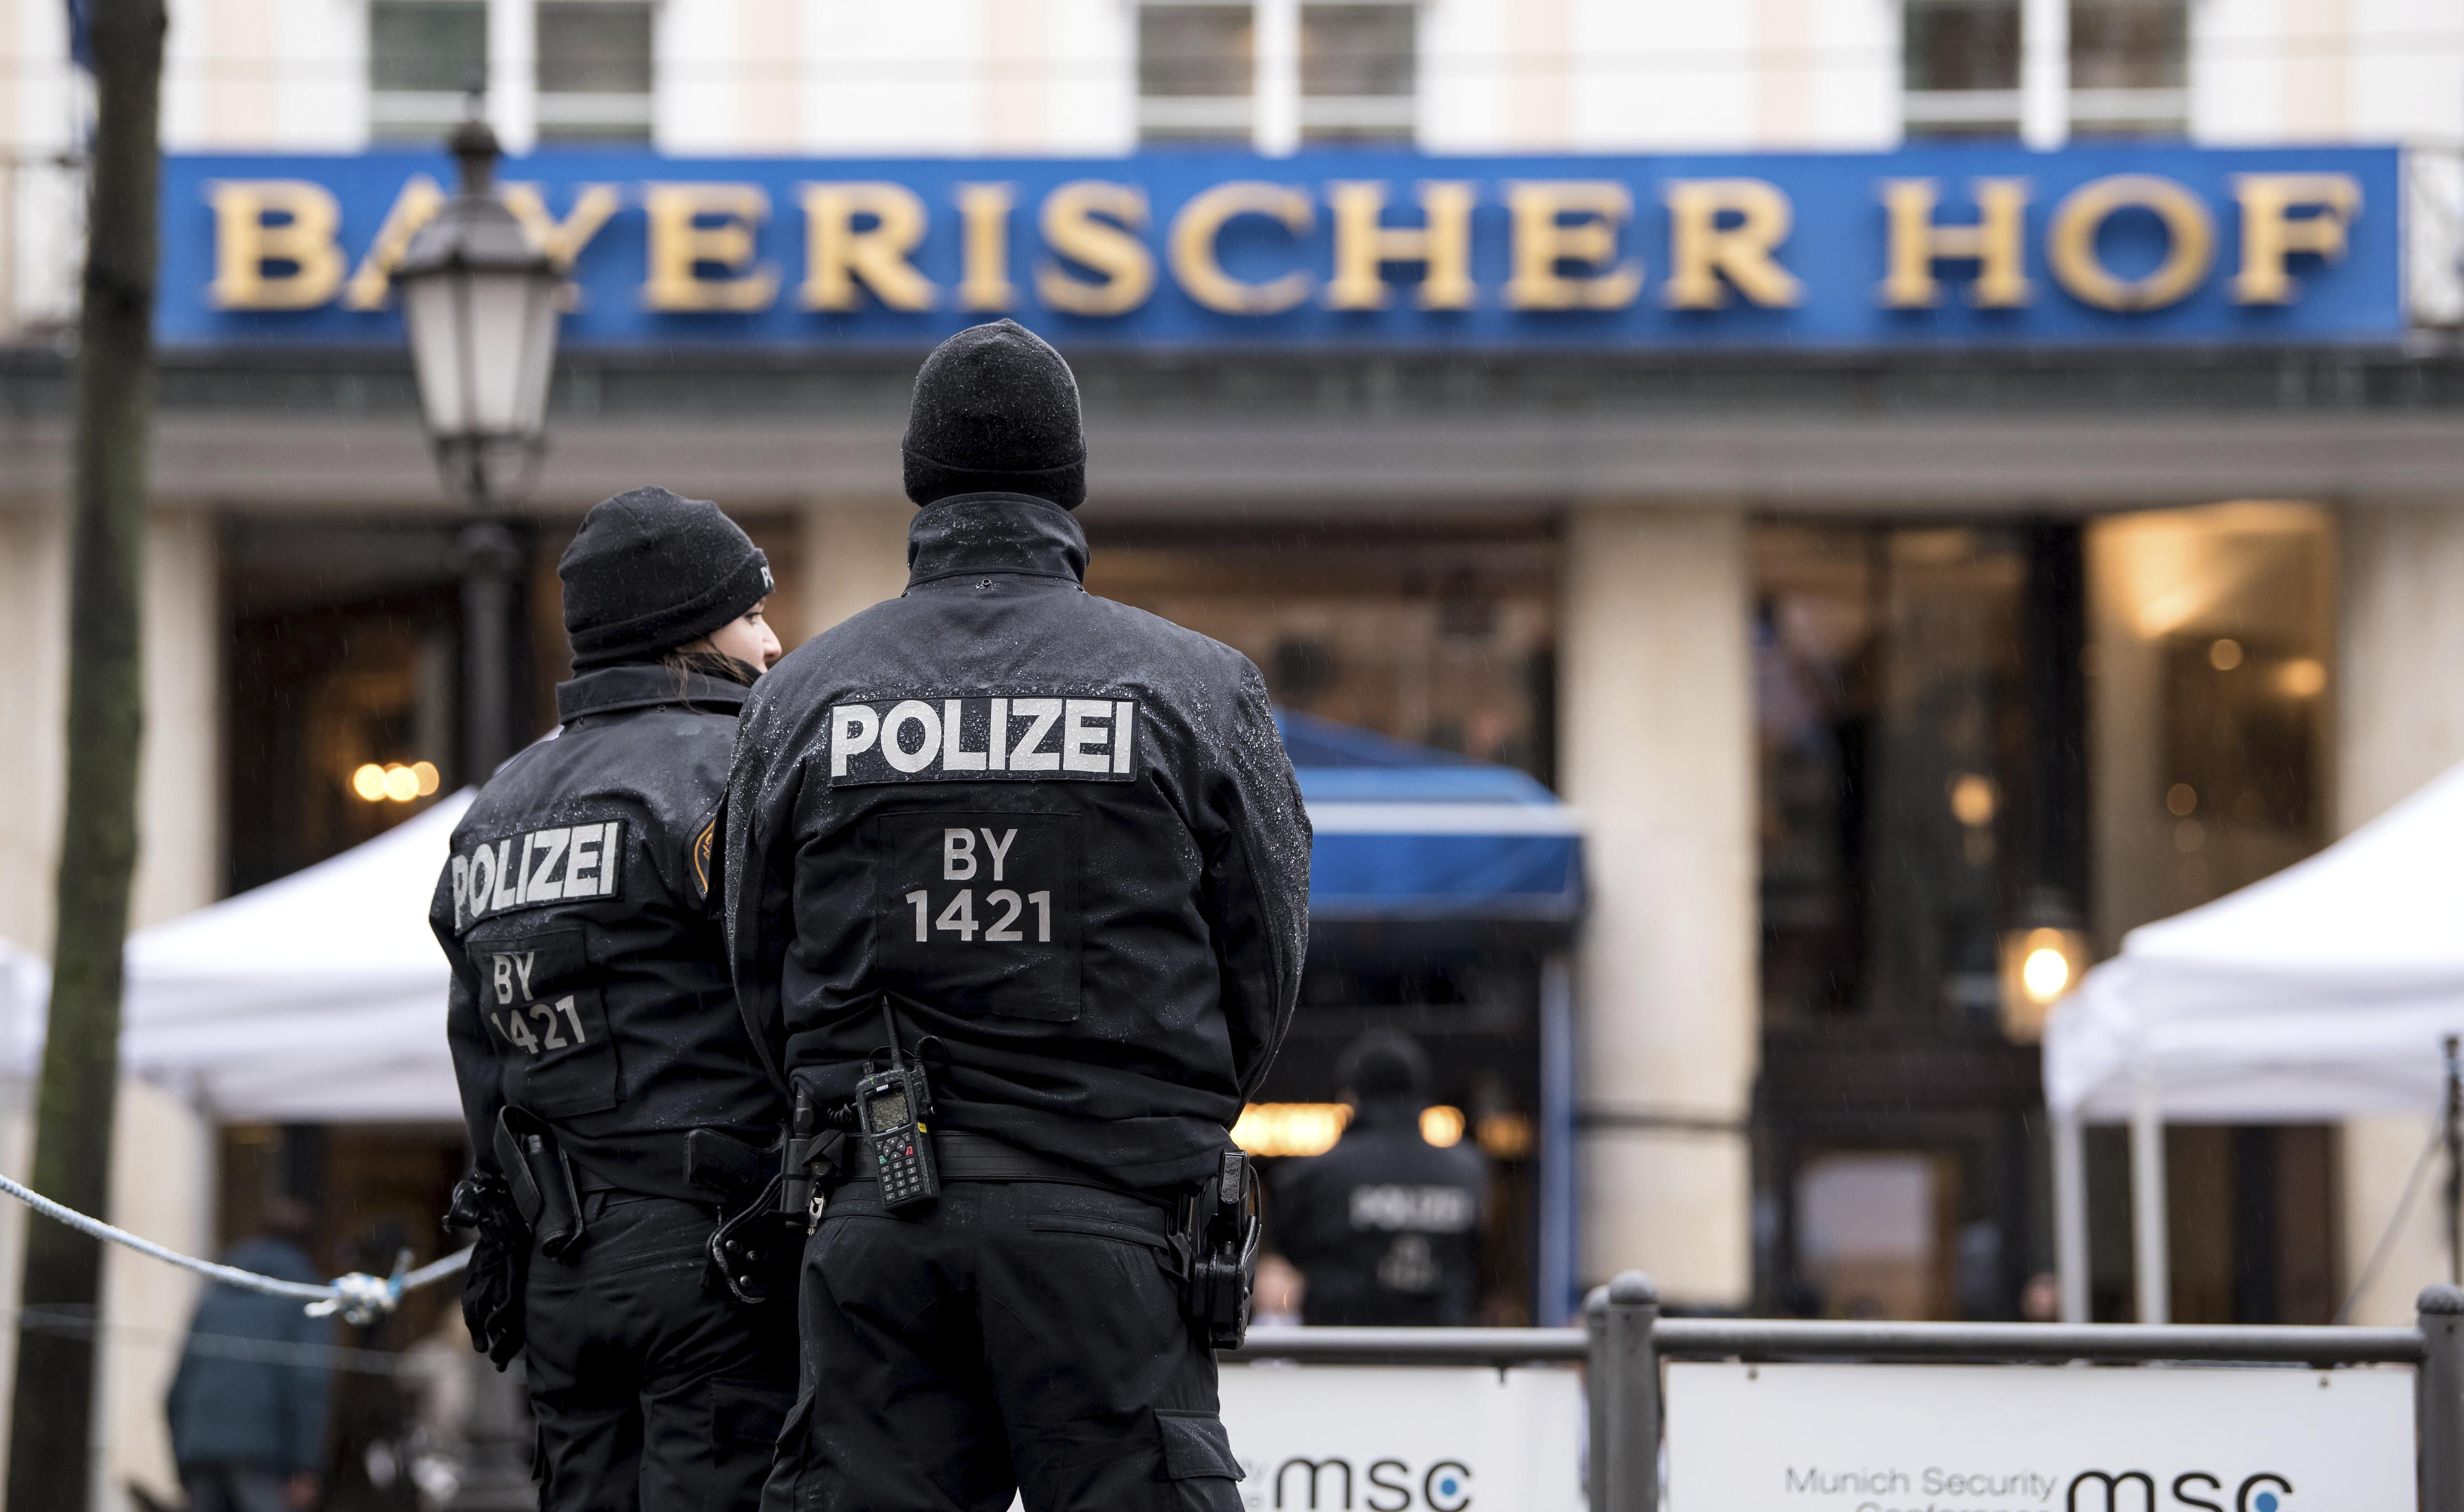 Security conference in Germany brings together top officials